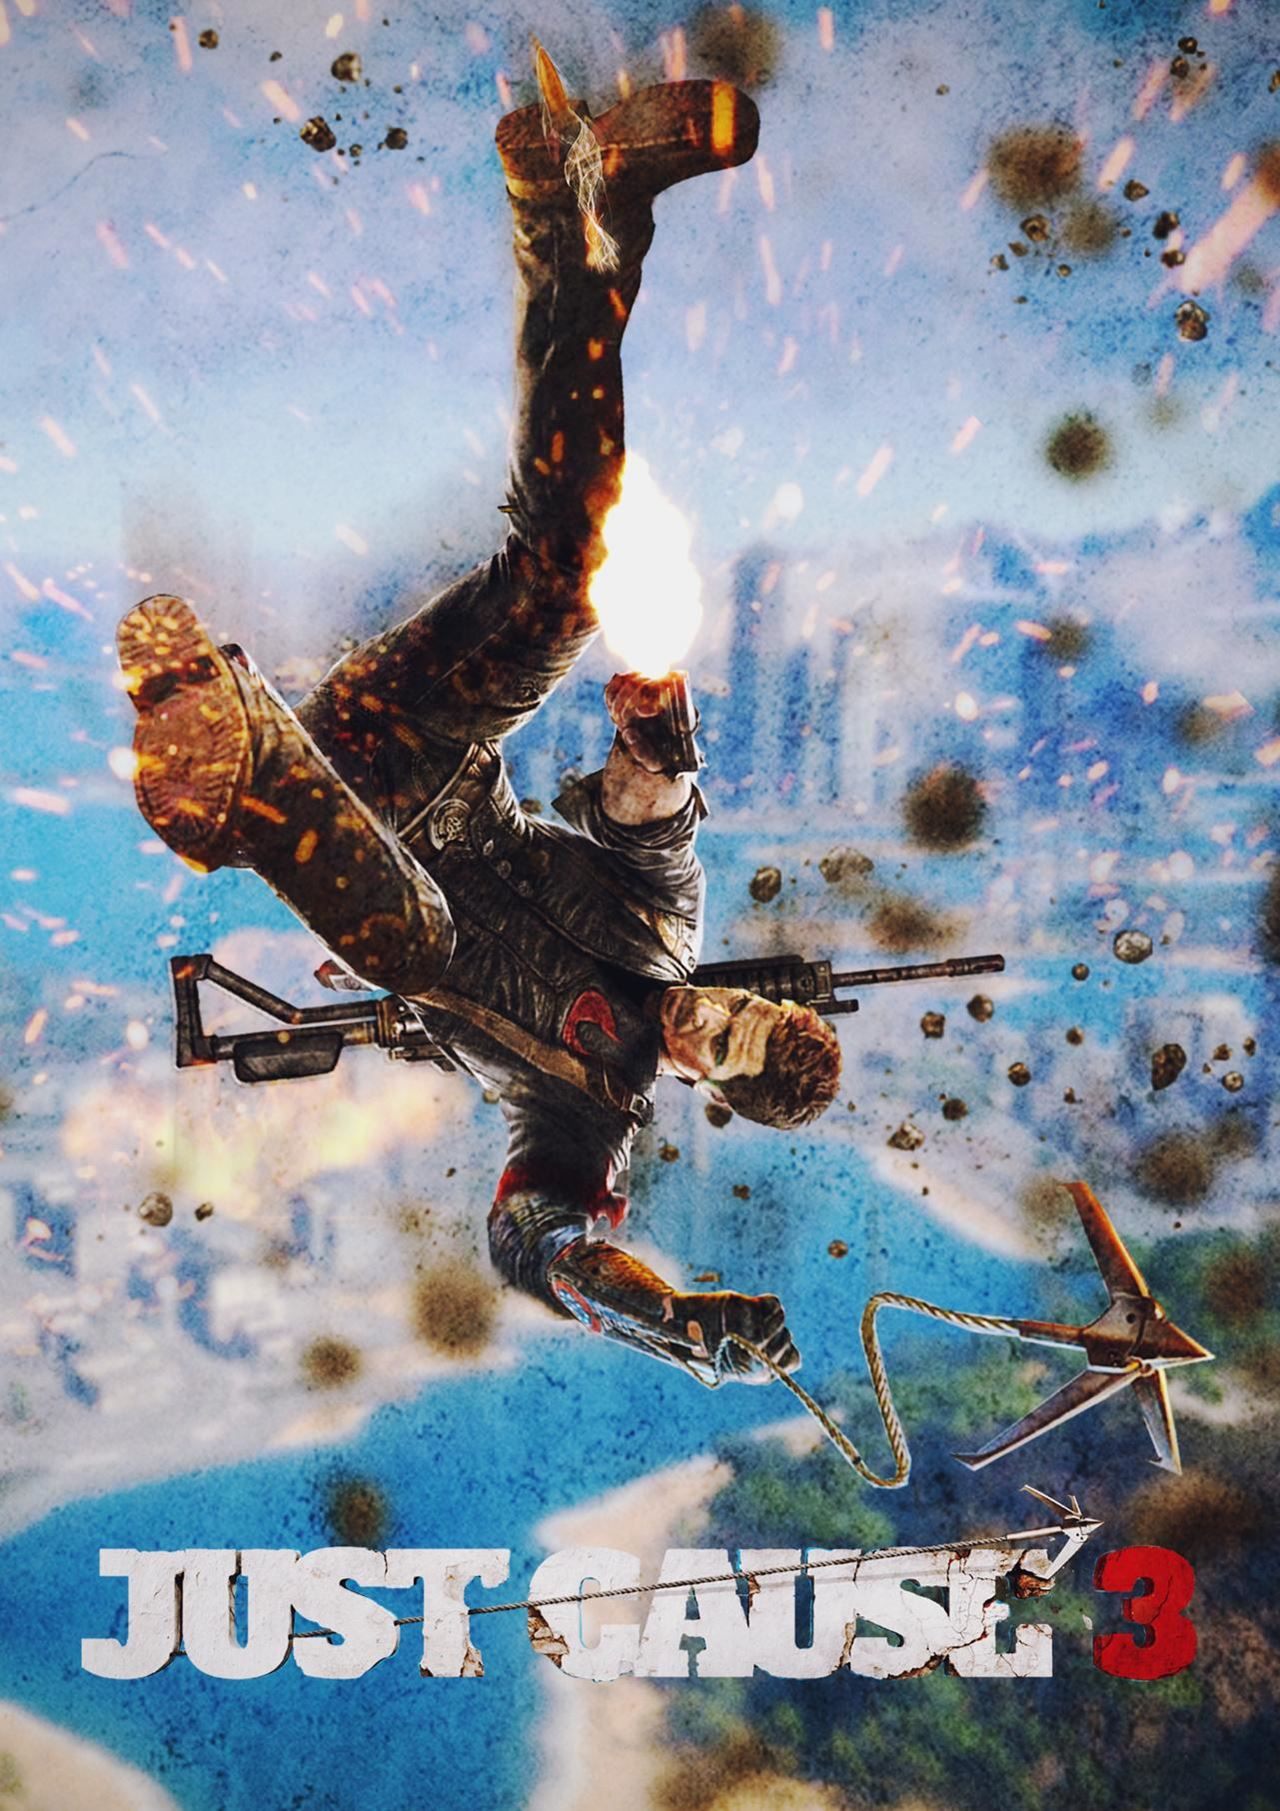 Just Cause 3 Gaming Wallpapers And Trailer